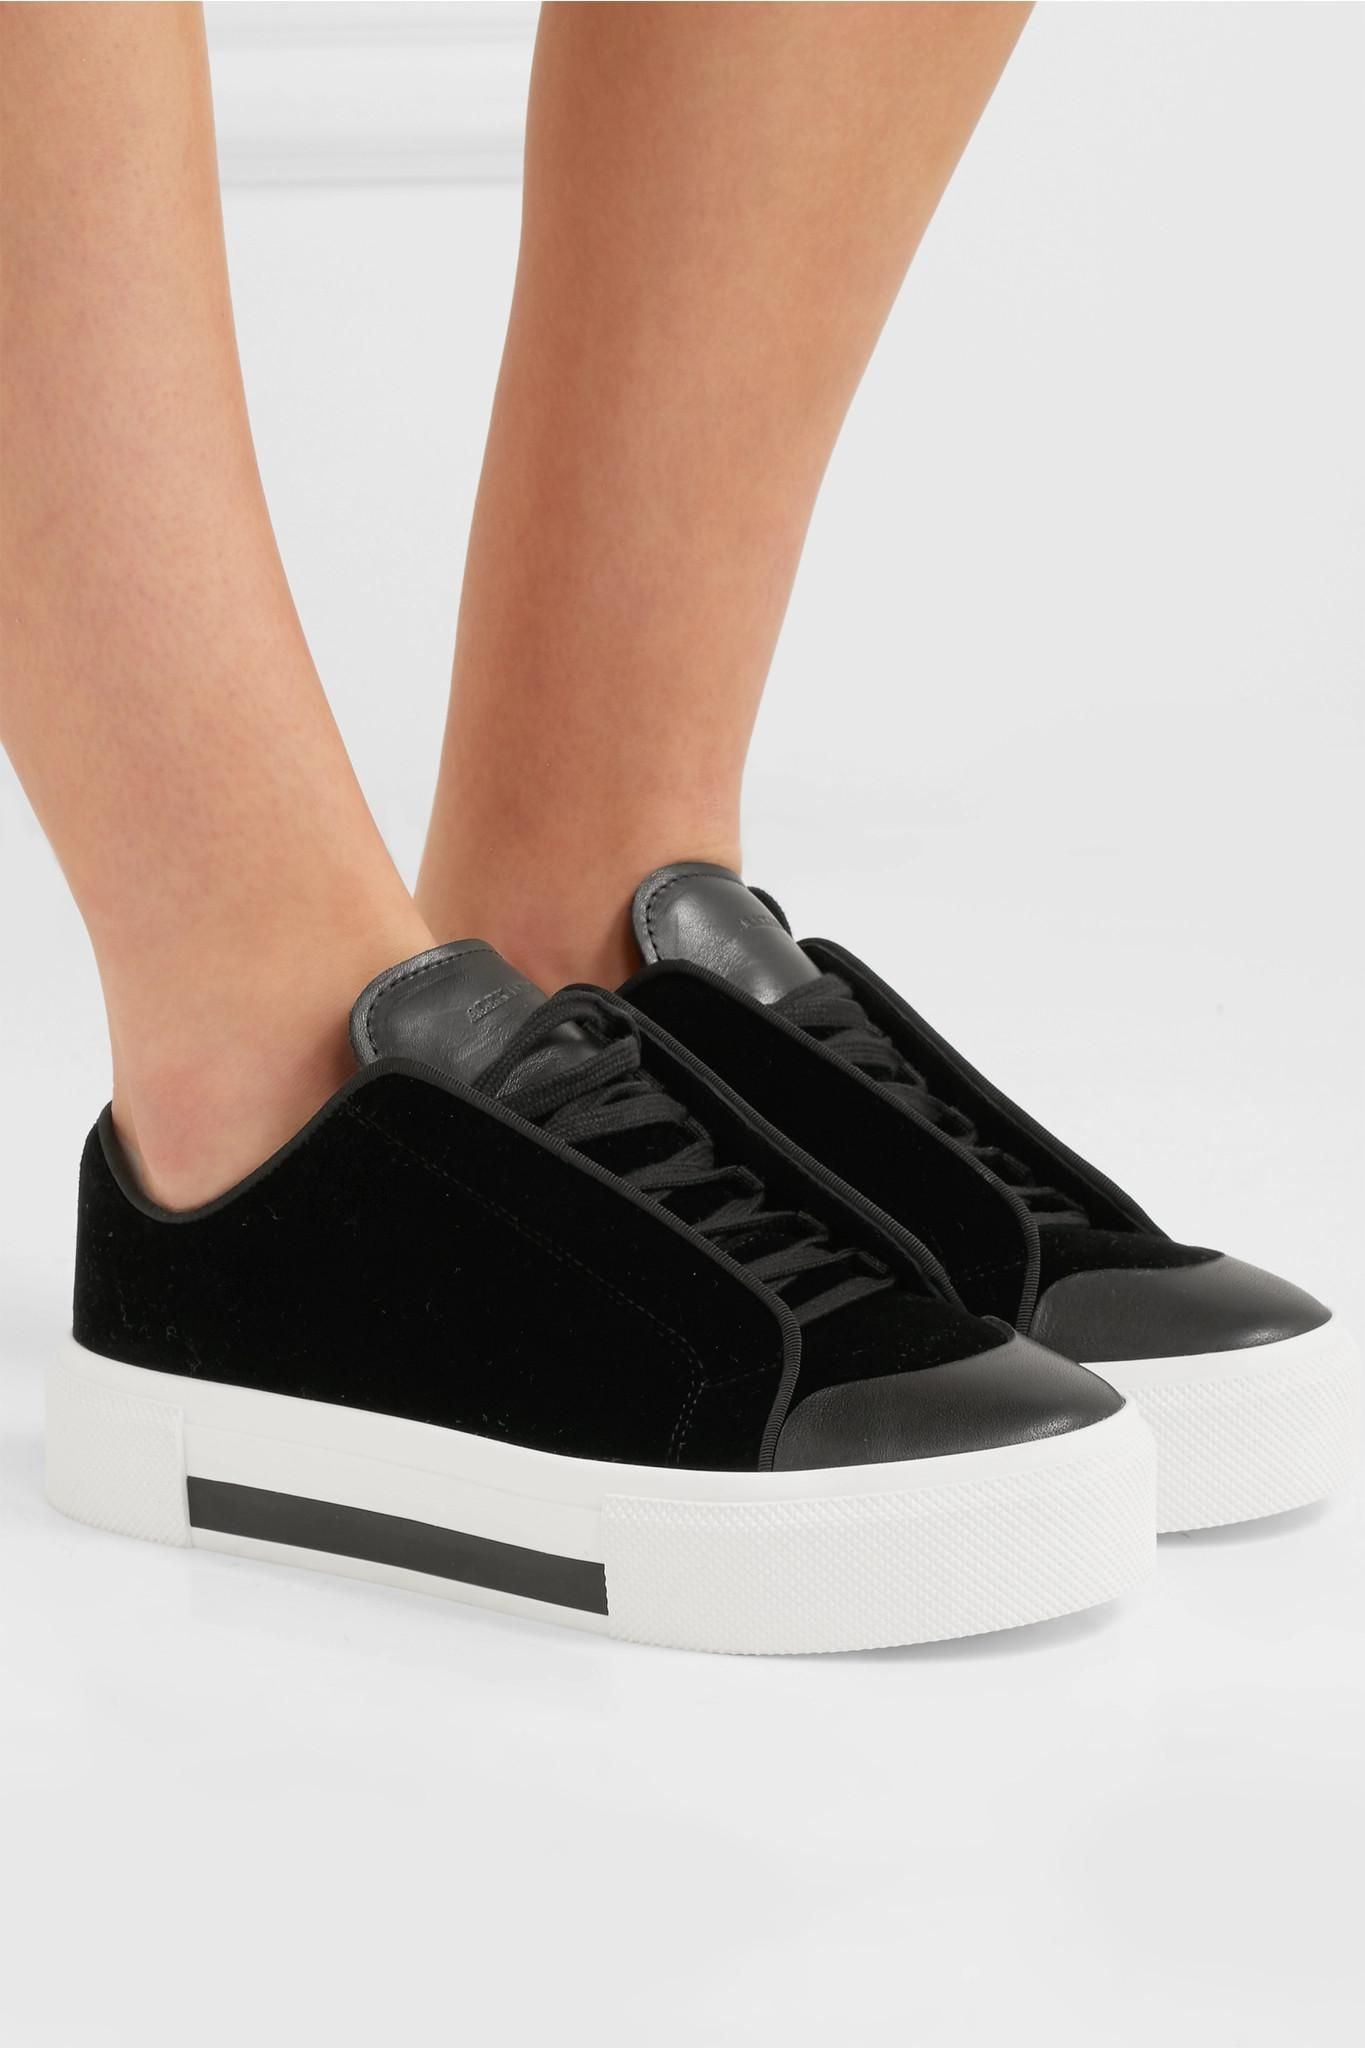 2989ea256b637 Alexander McQueen - Black Velvet And Leather Exaggerated-sole Sneakers -  Lyst. View fullscreen